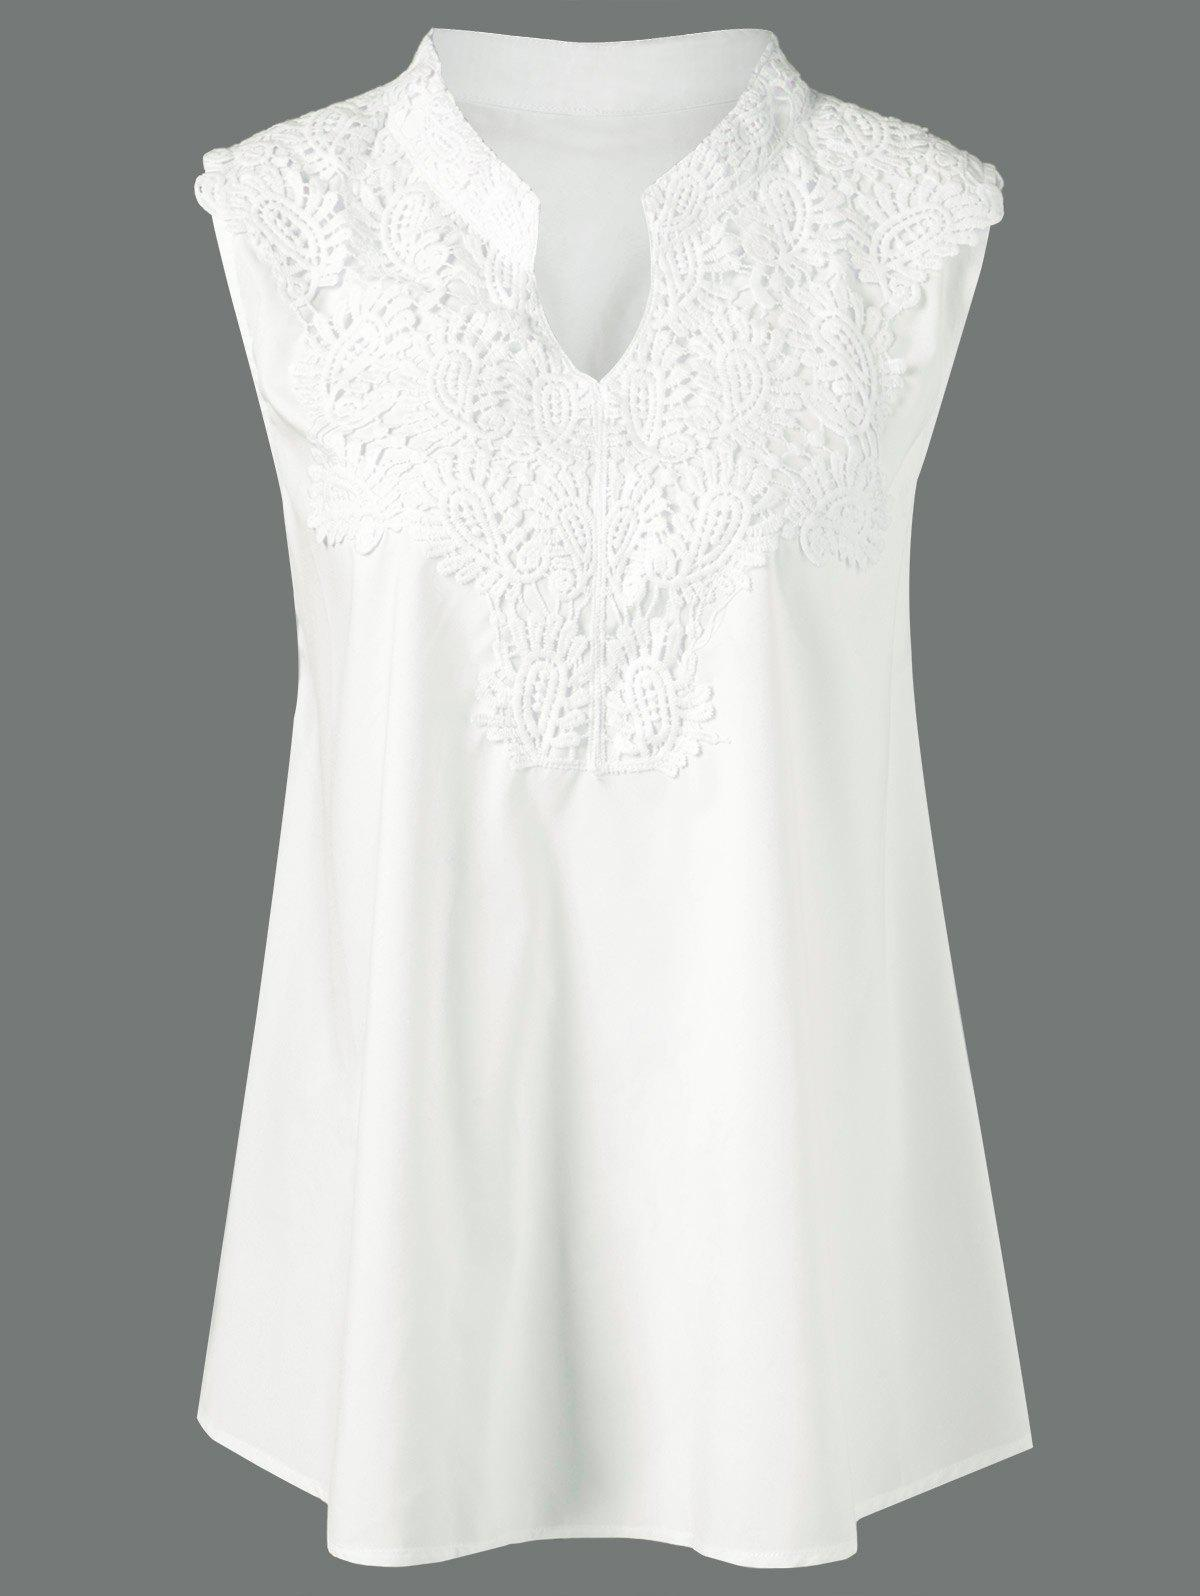 Plus Size Lace Insert Crochet Tank Top, WHITE, XL in Plus Size T ...